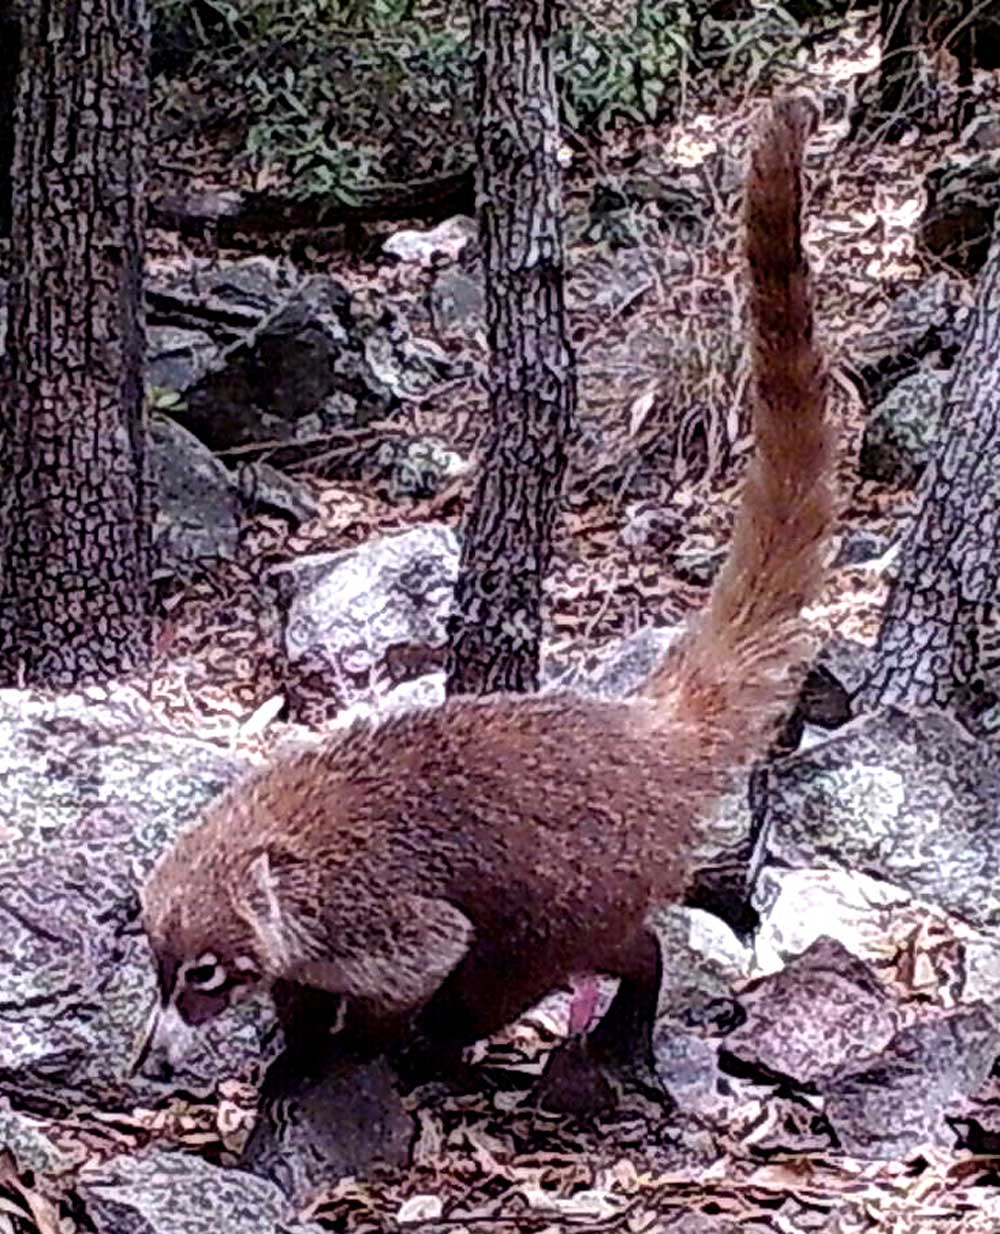 Coati caught by Madrean Discovery Expedition cameras.